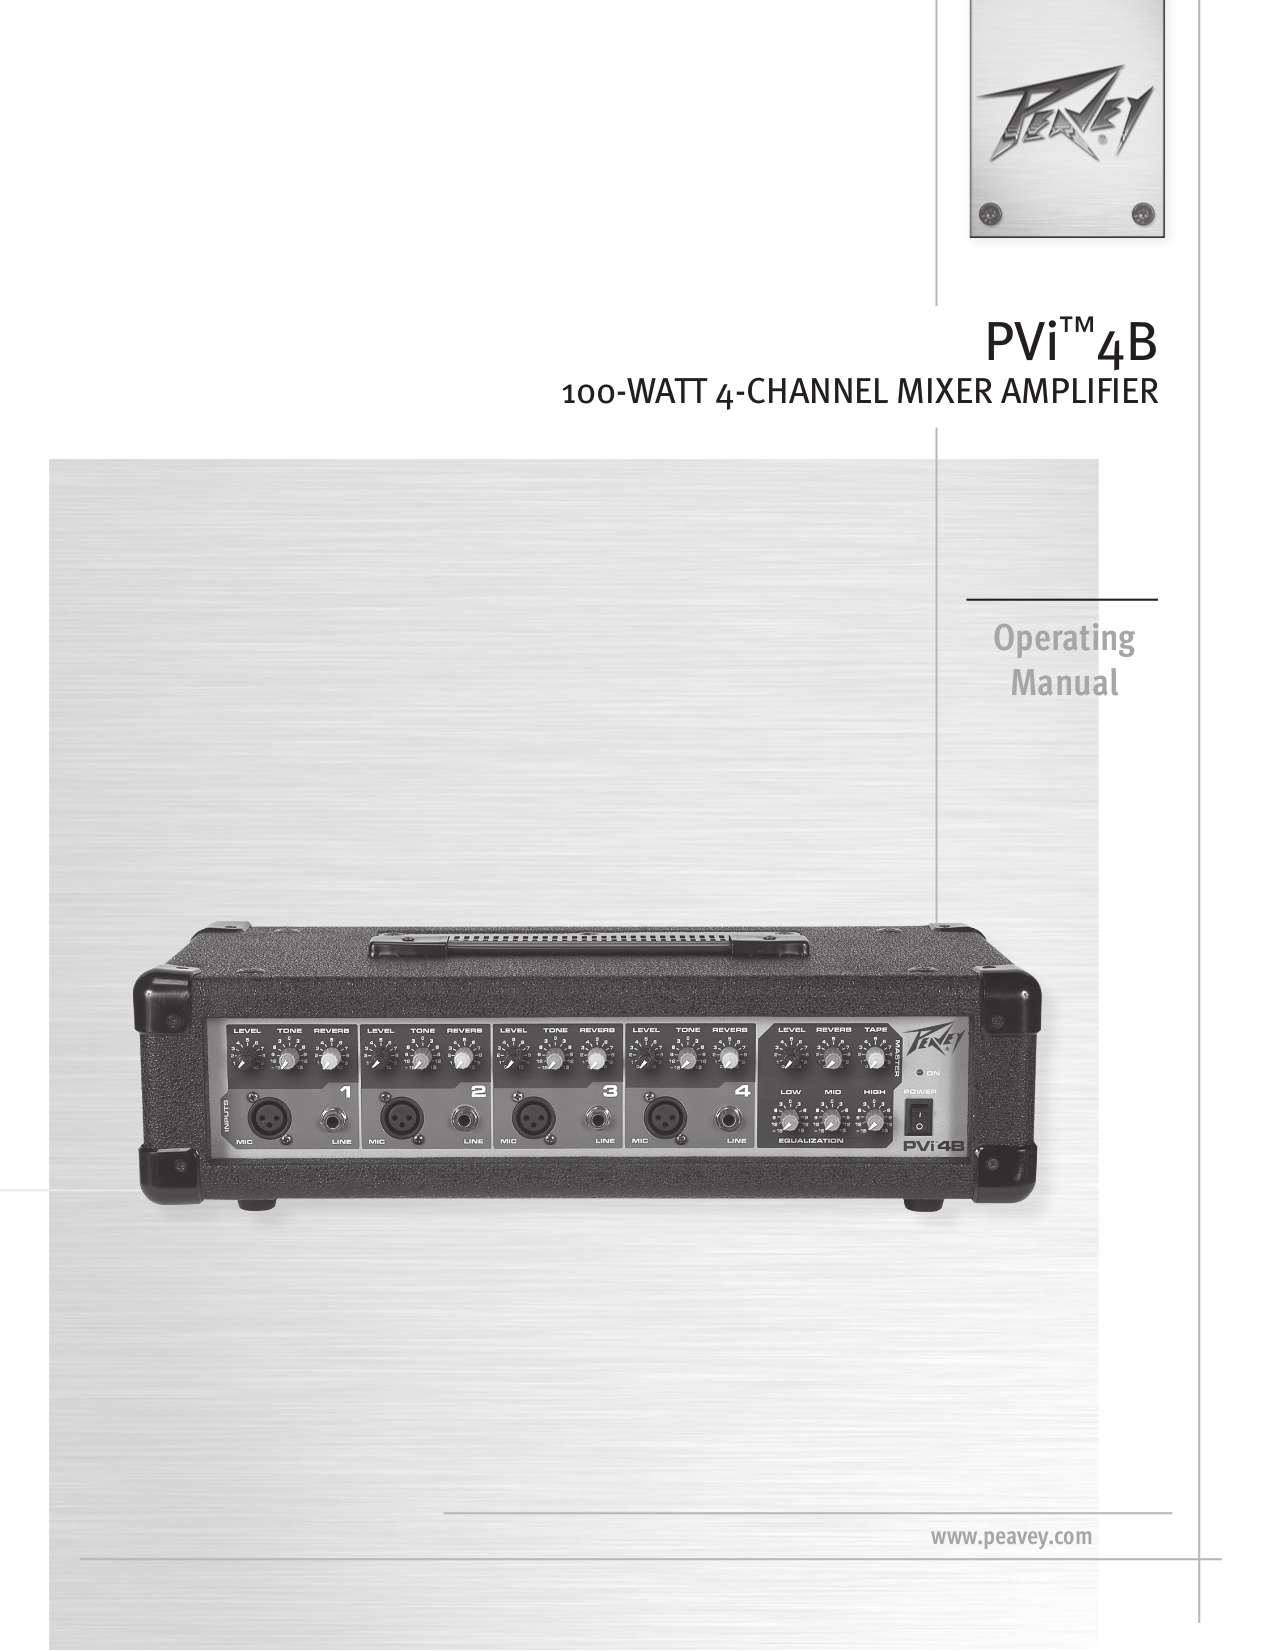 Peavey 5150 Schematic Pdf Explained Wiring Diagrams Diagram Mixer Amps 7 5t Search For U2022 Manual